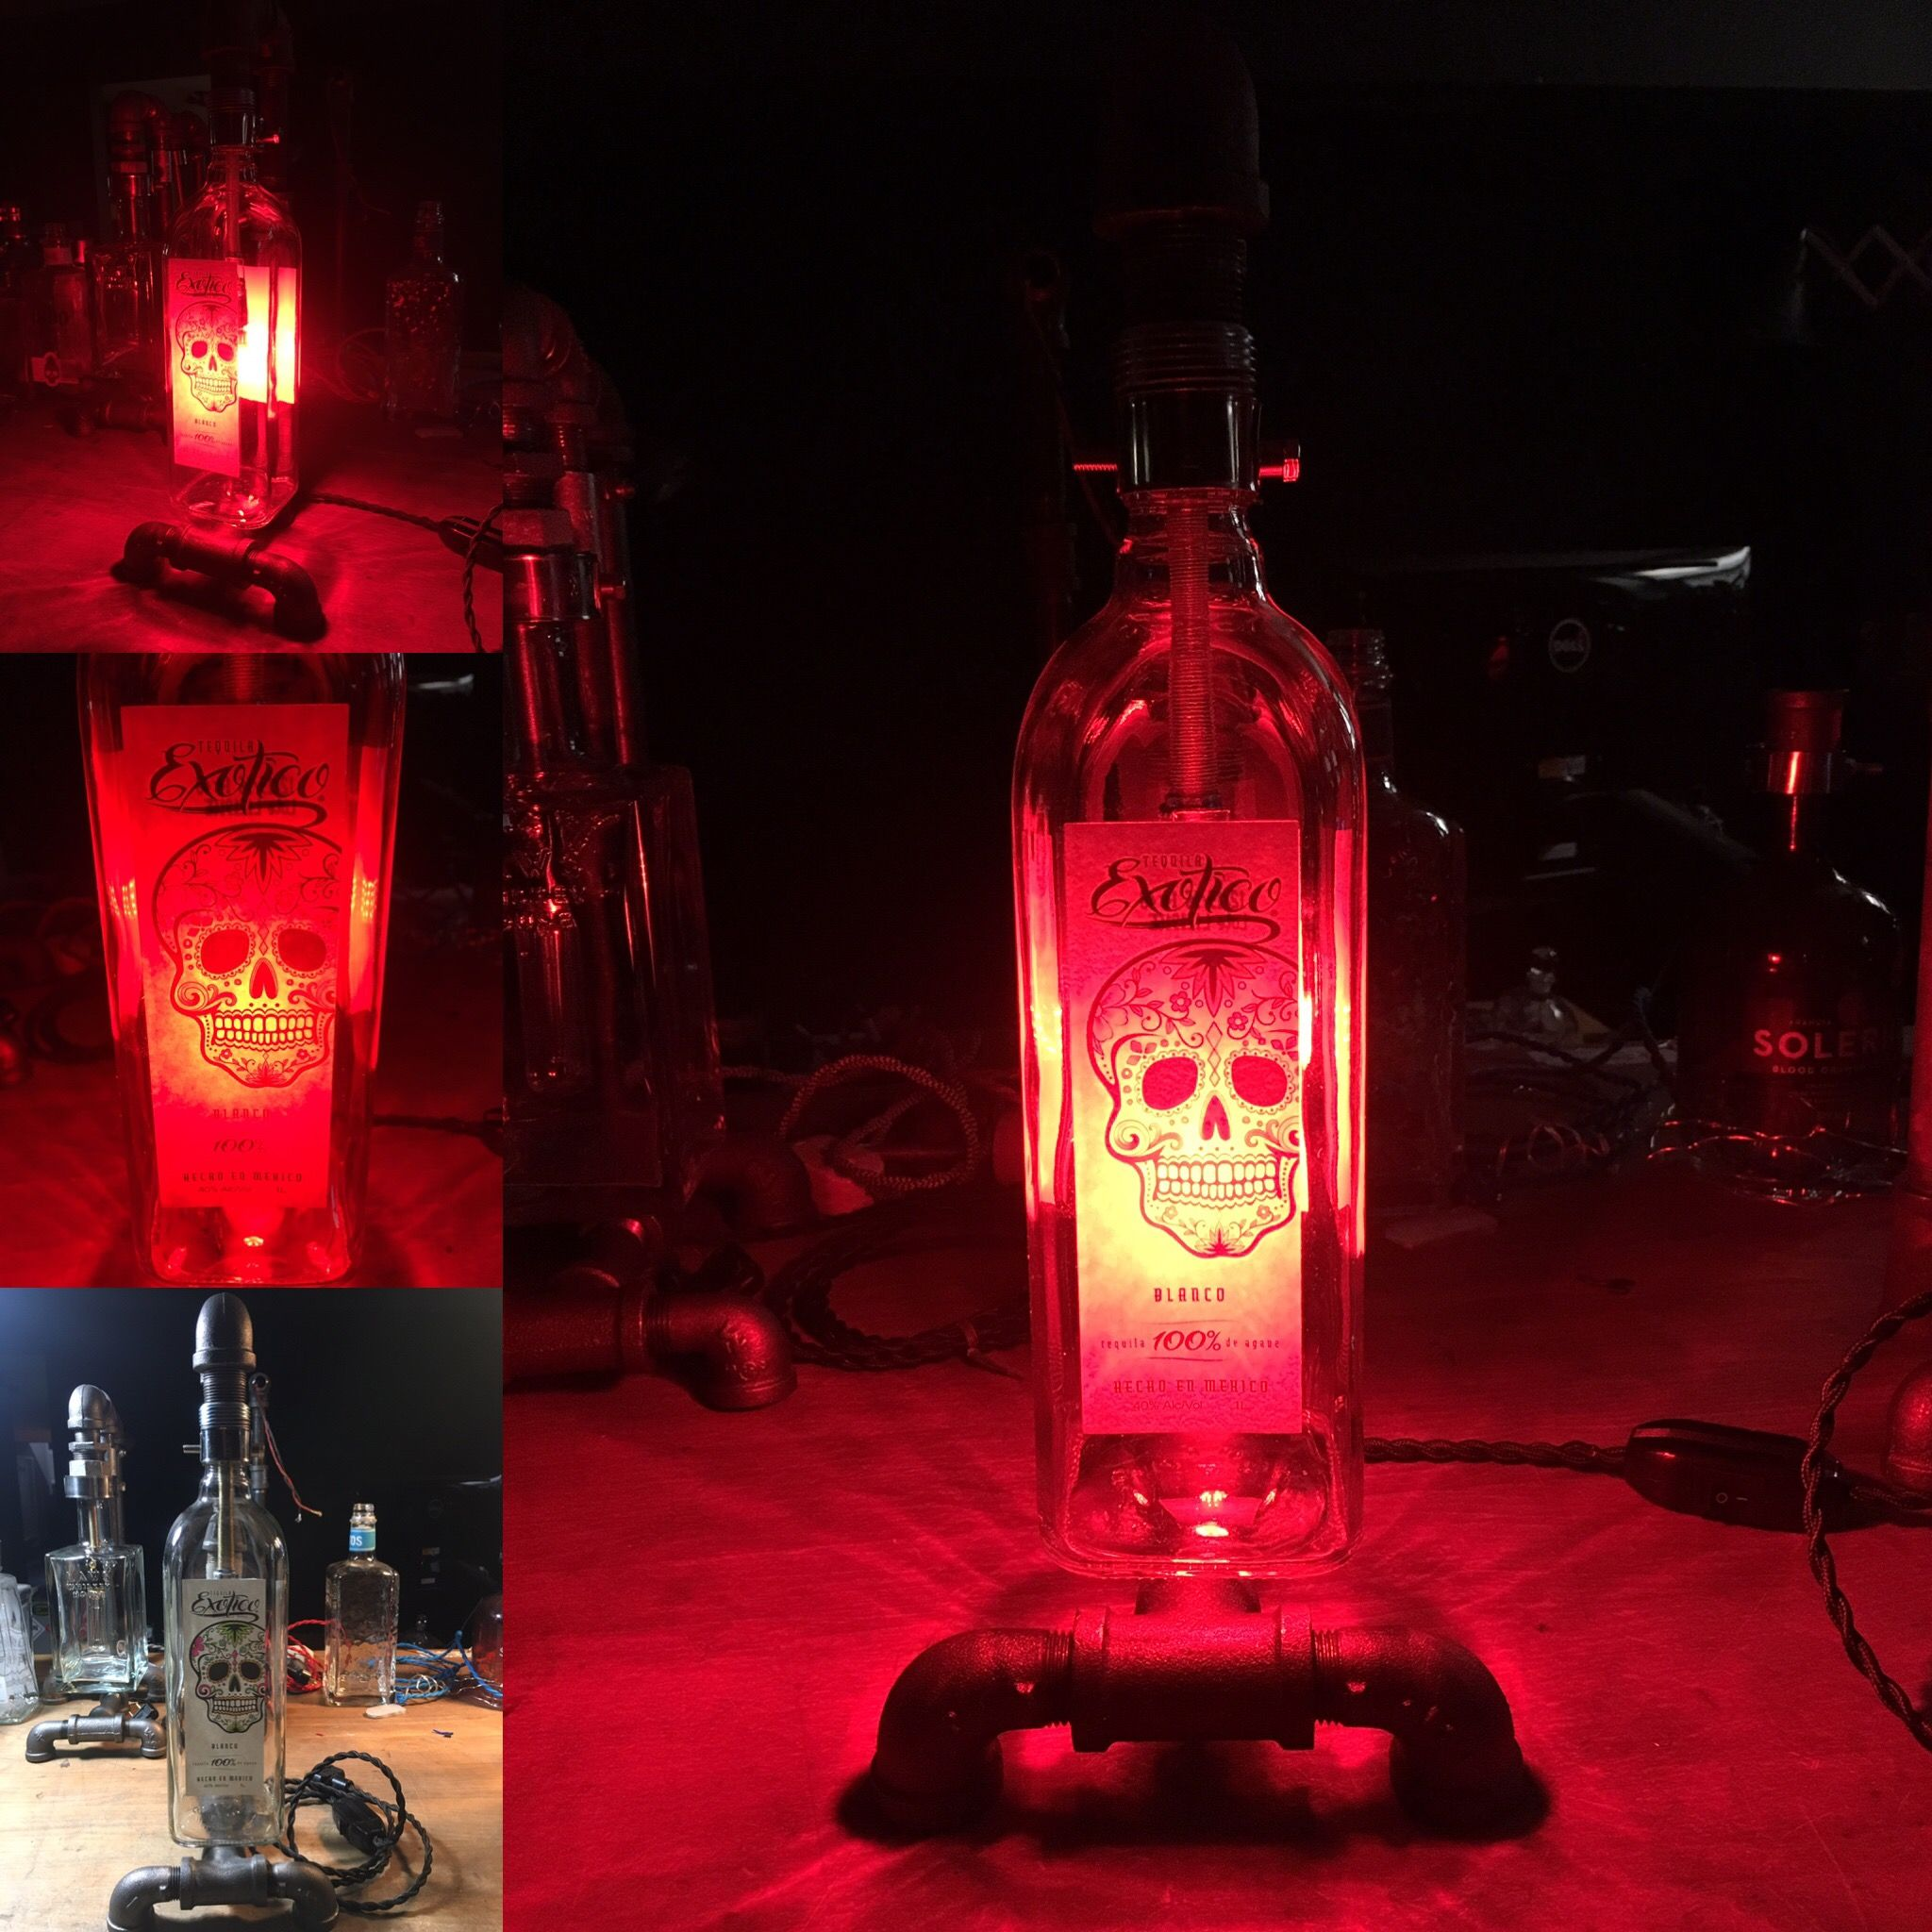 Lamp With Tequila Envy Designs Led Red Bulbwrench Exotico Bottle PkZilXwOTu